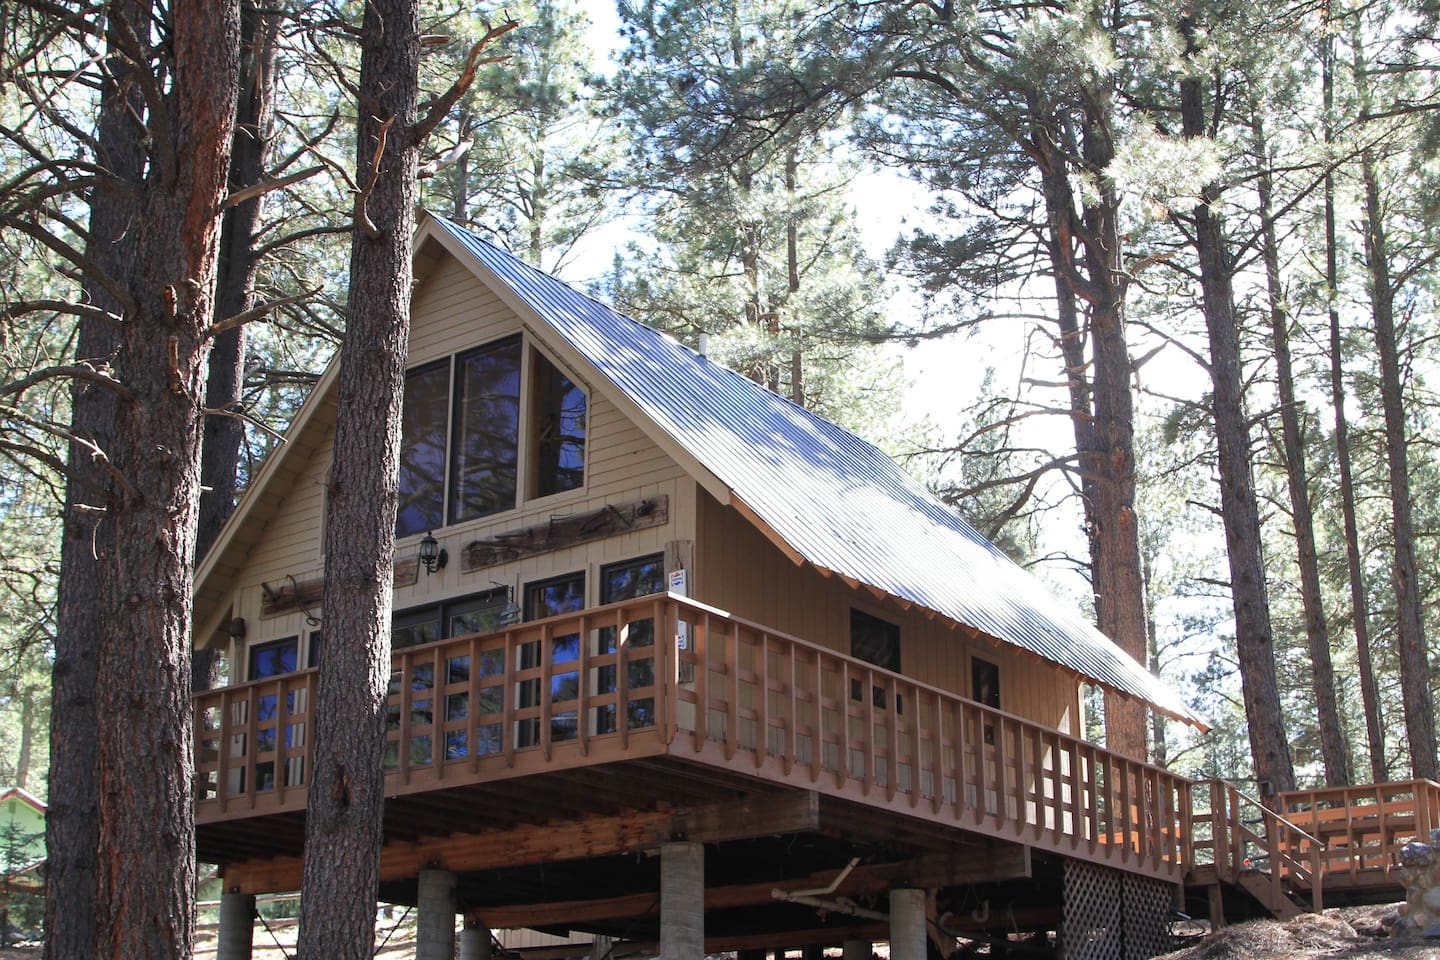 rooms in new jungos mex angel cabin cabins mexico original united states rent for fire